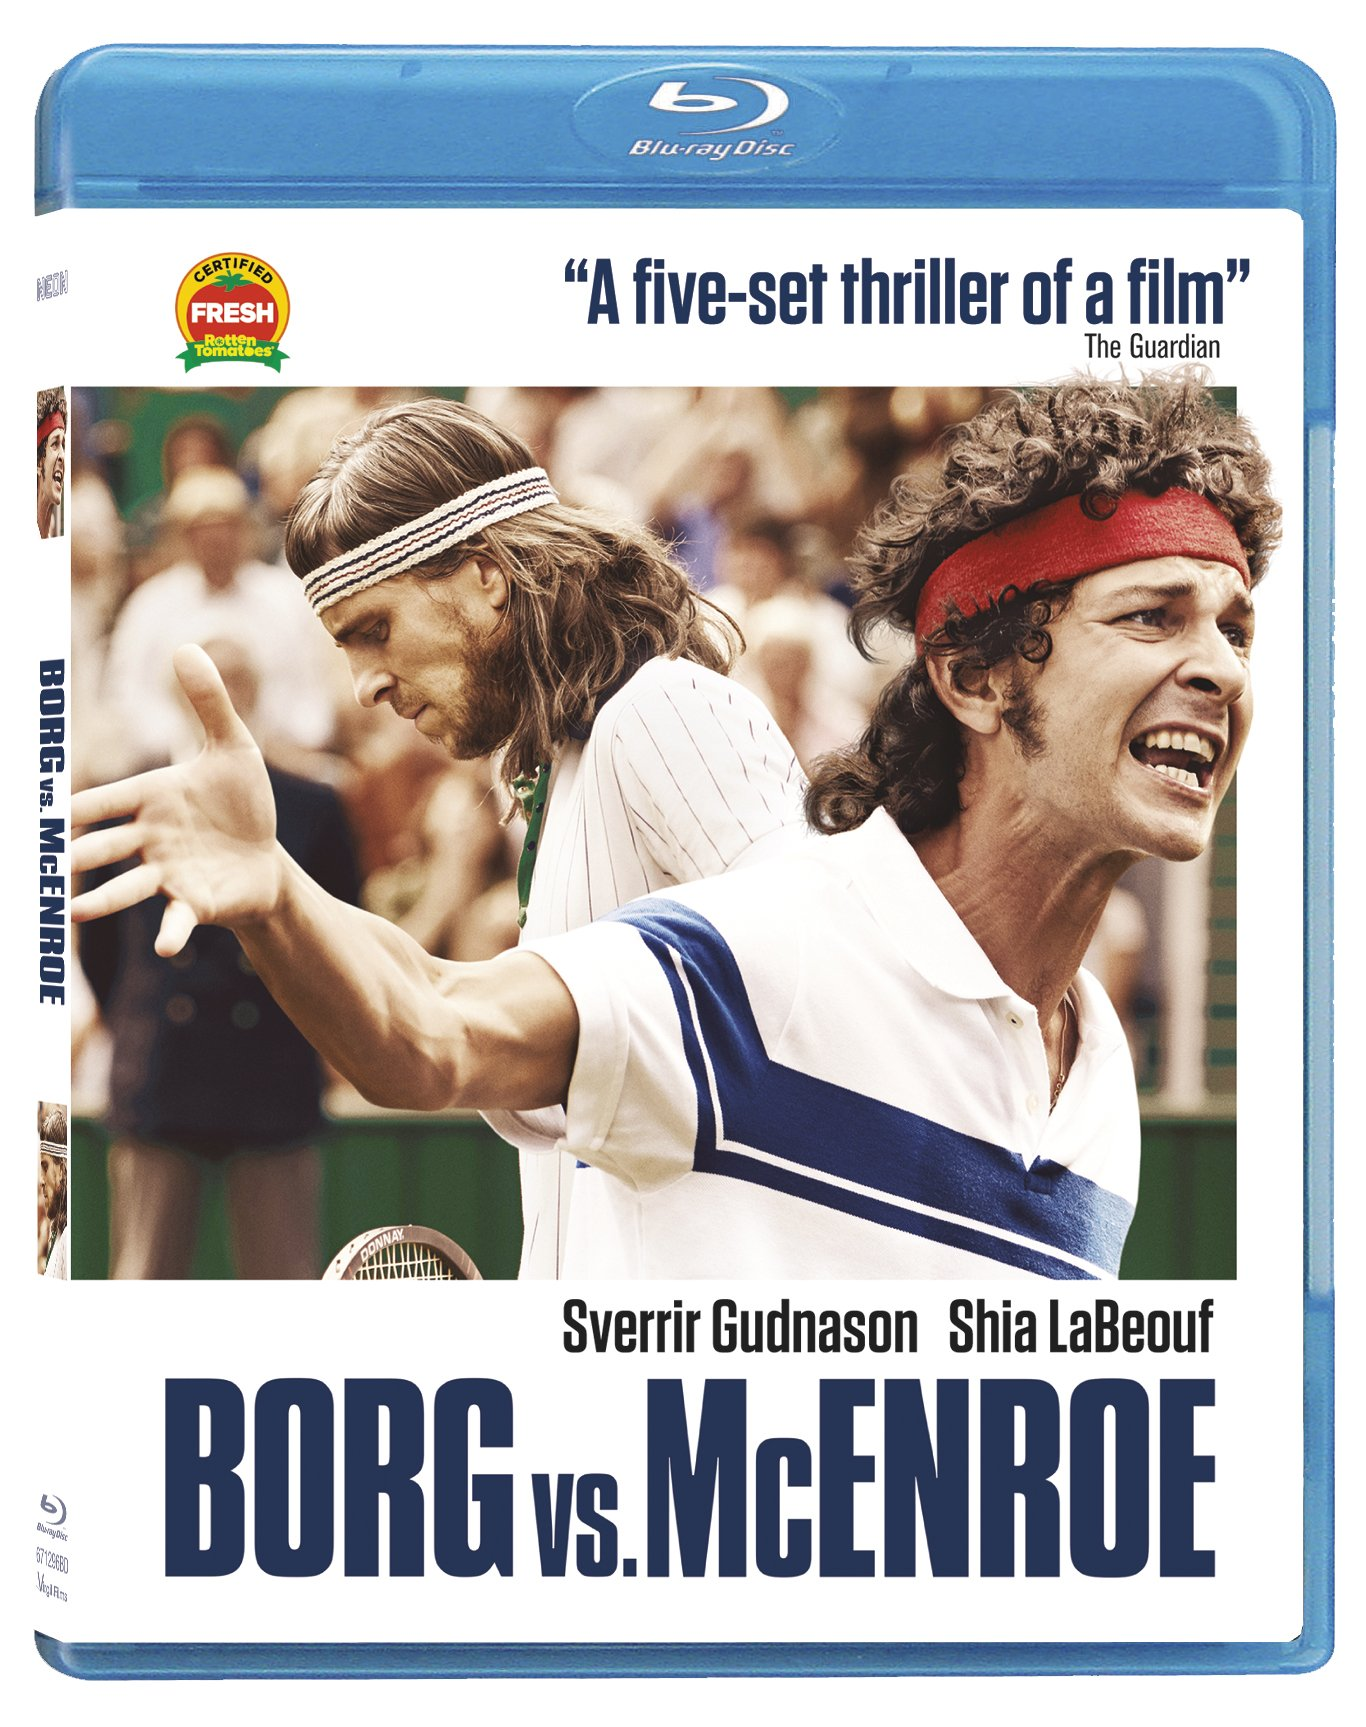 Blu-ray : Borg Vs. Mcenroe (Blu-ray)